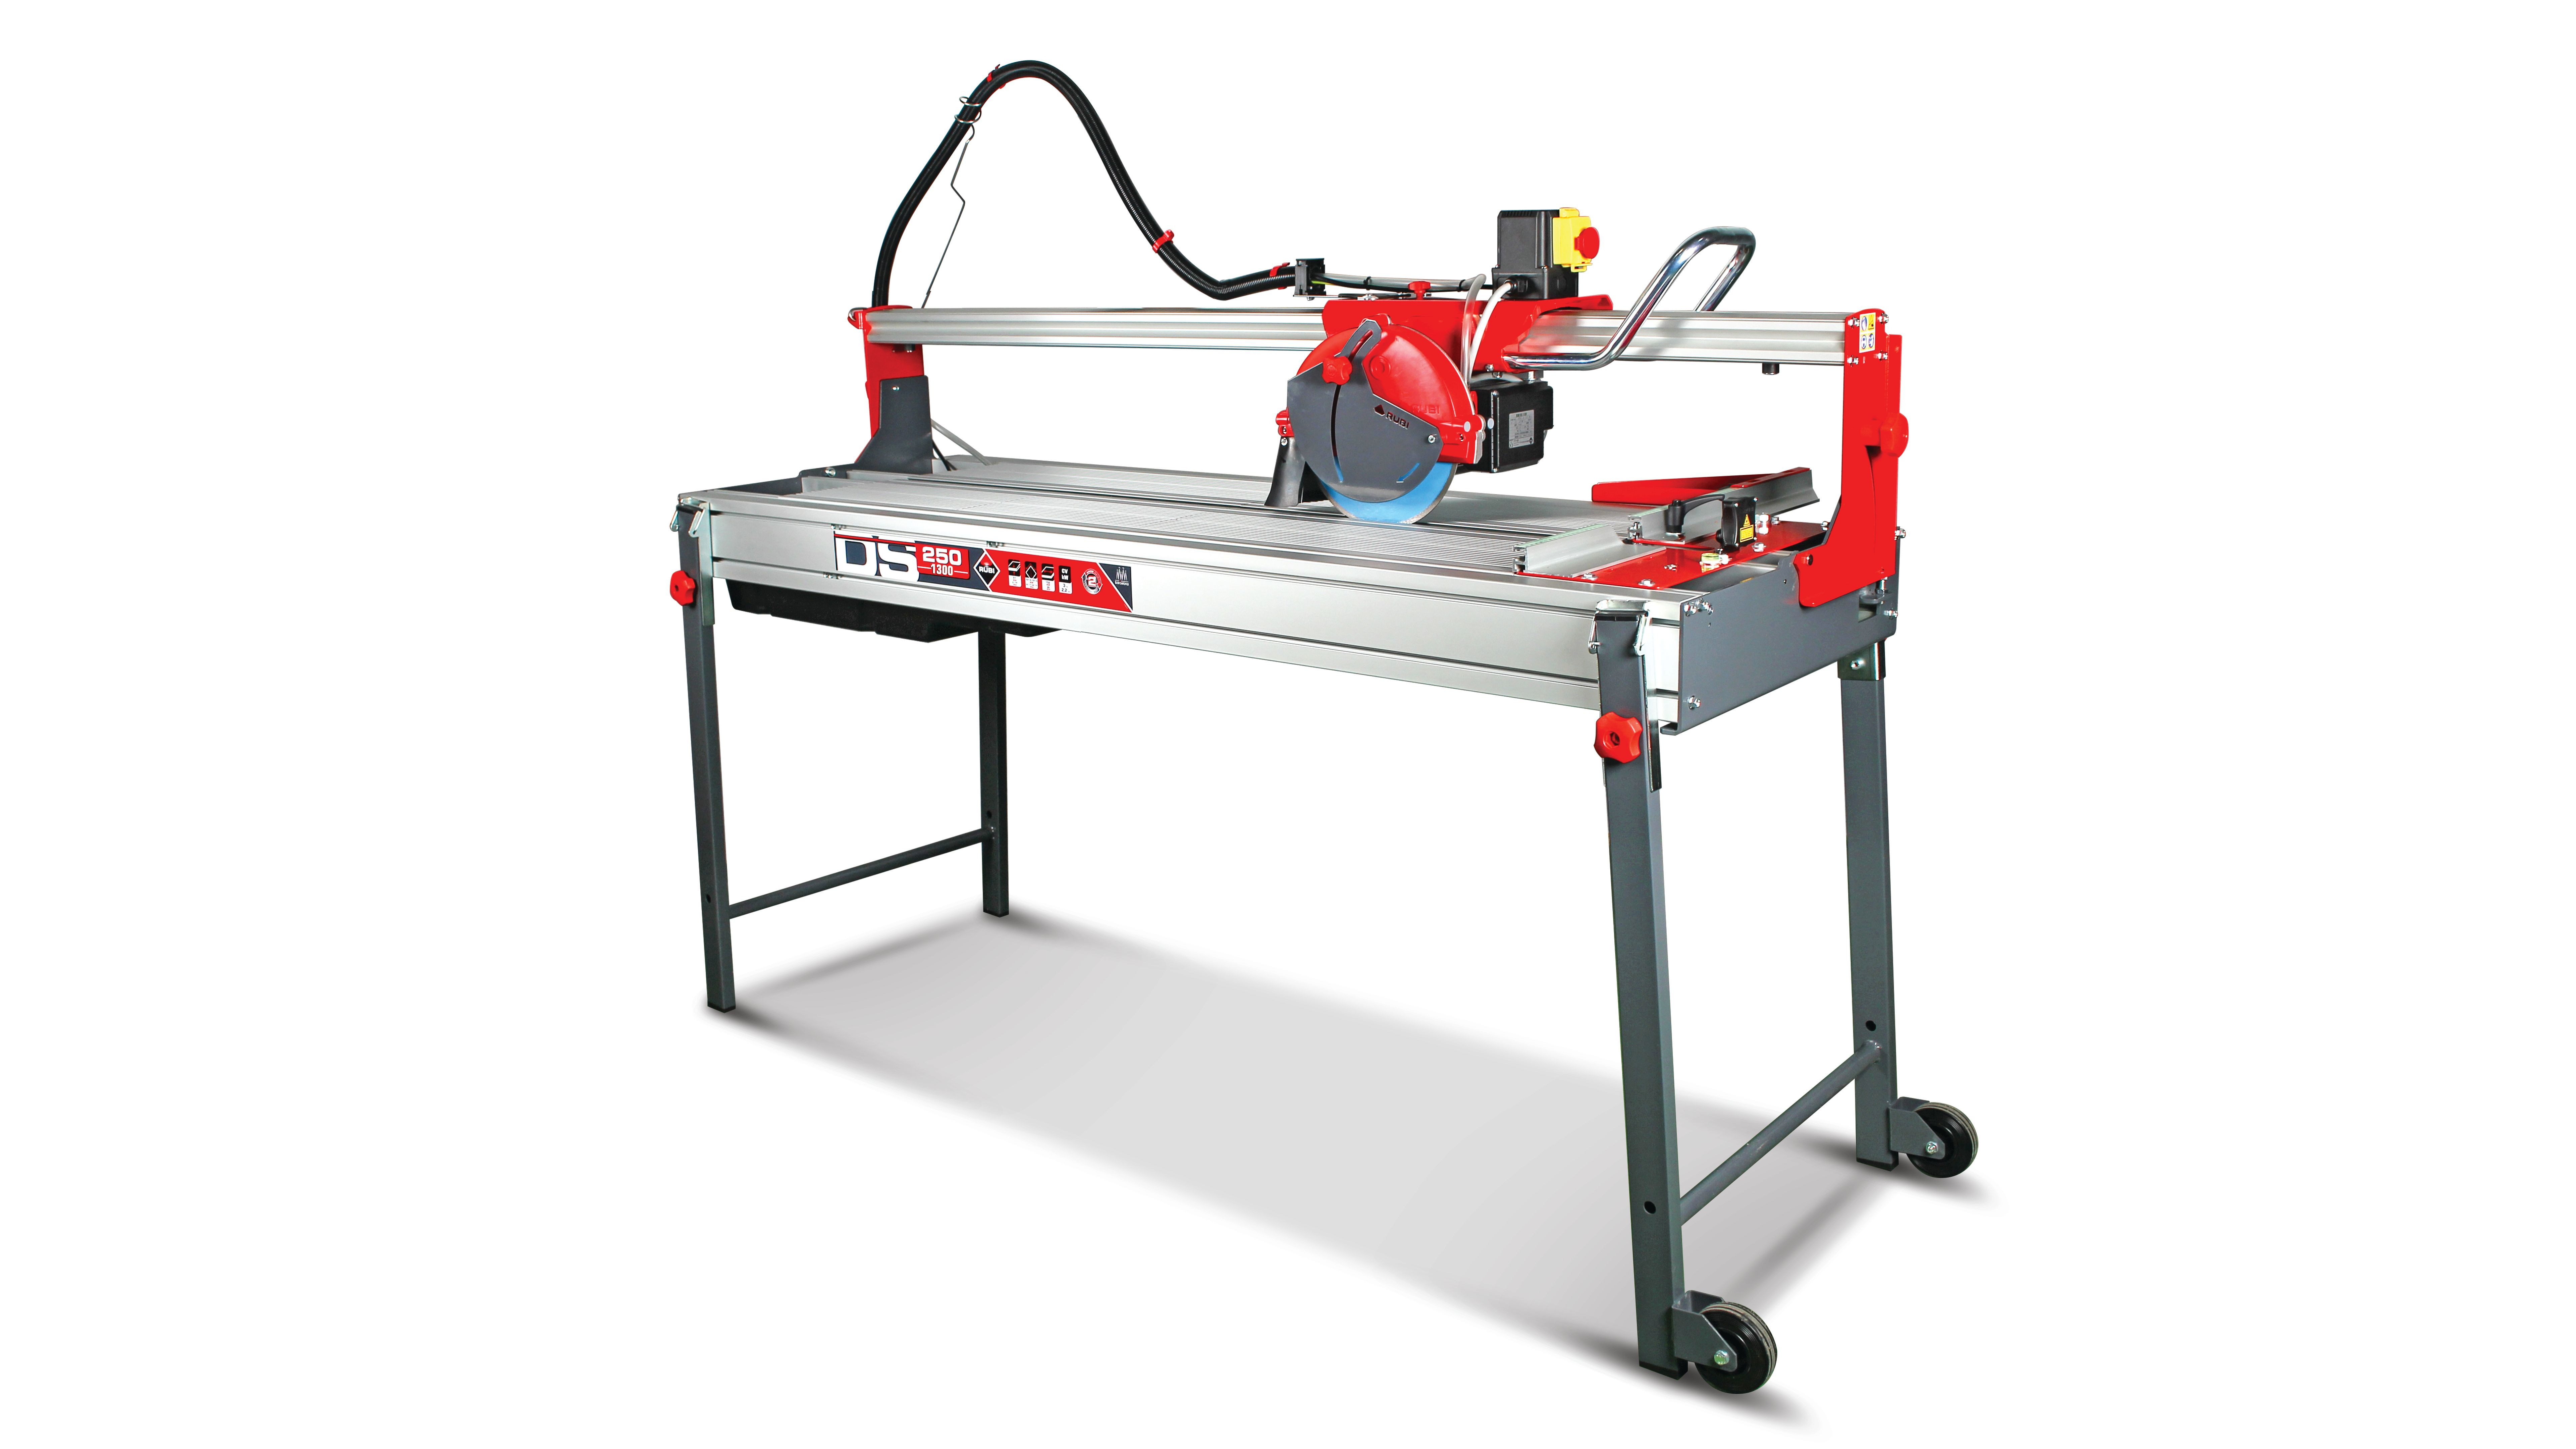 Rubi_Laser and Level Electric Cutter_52930